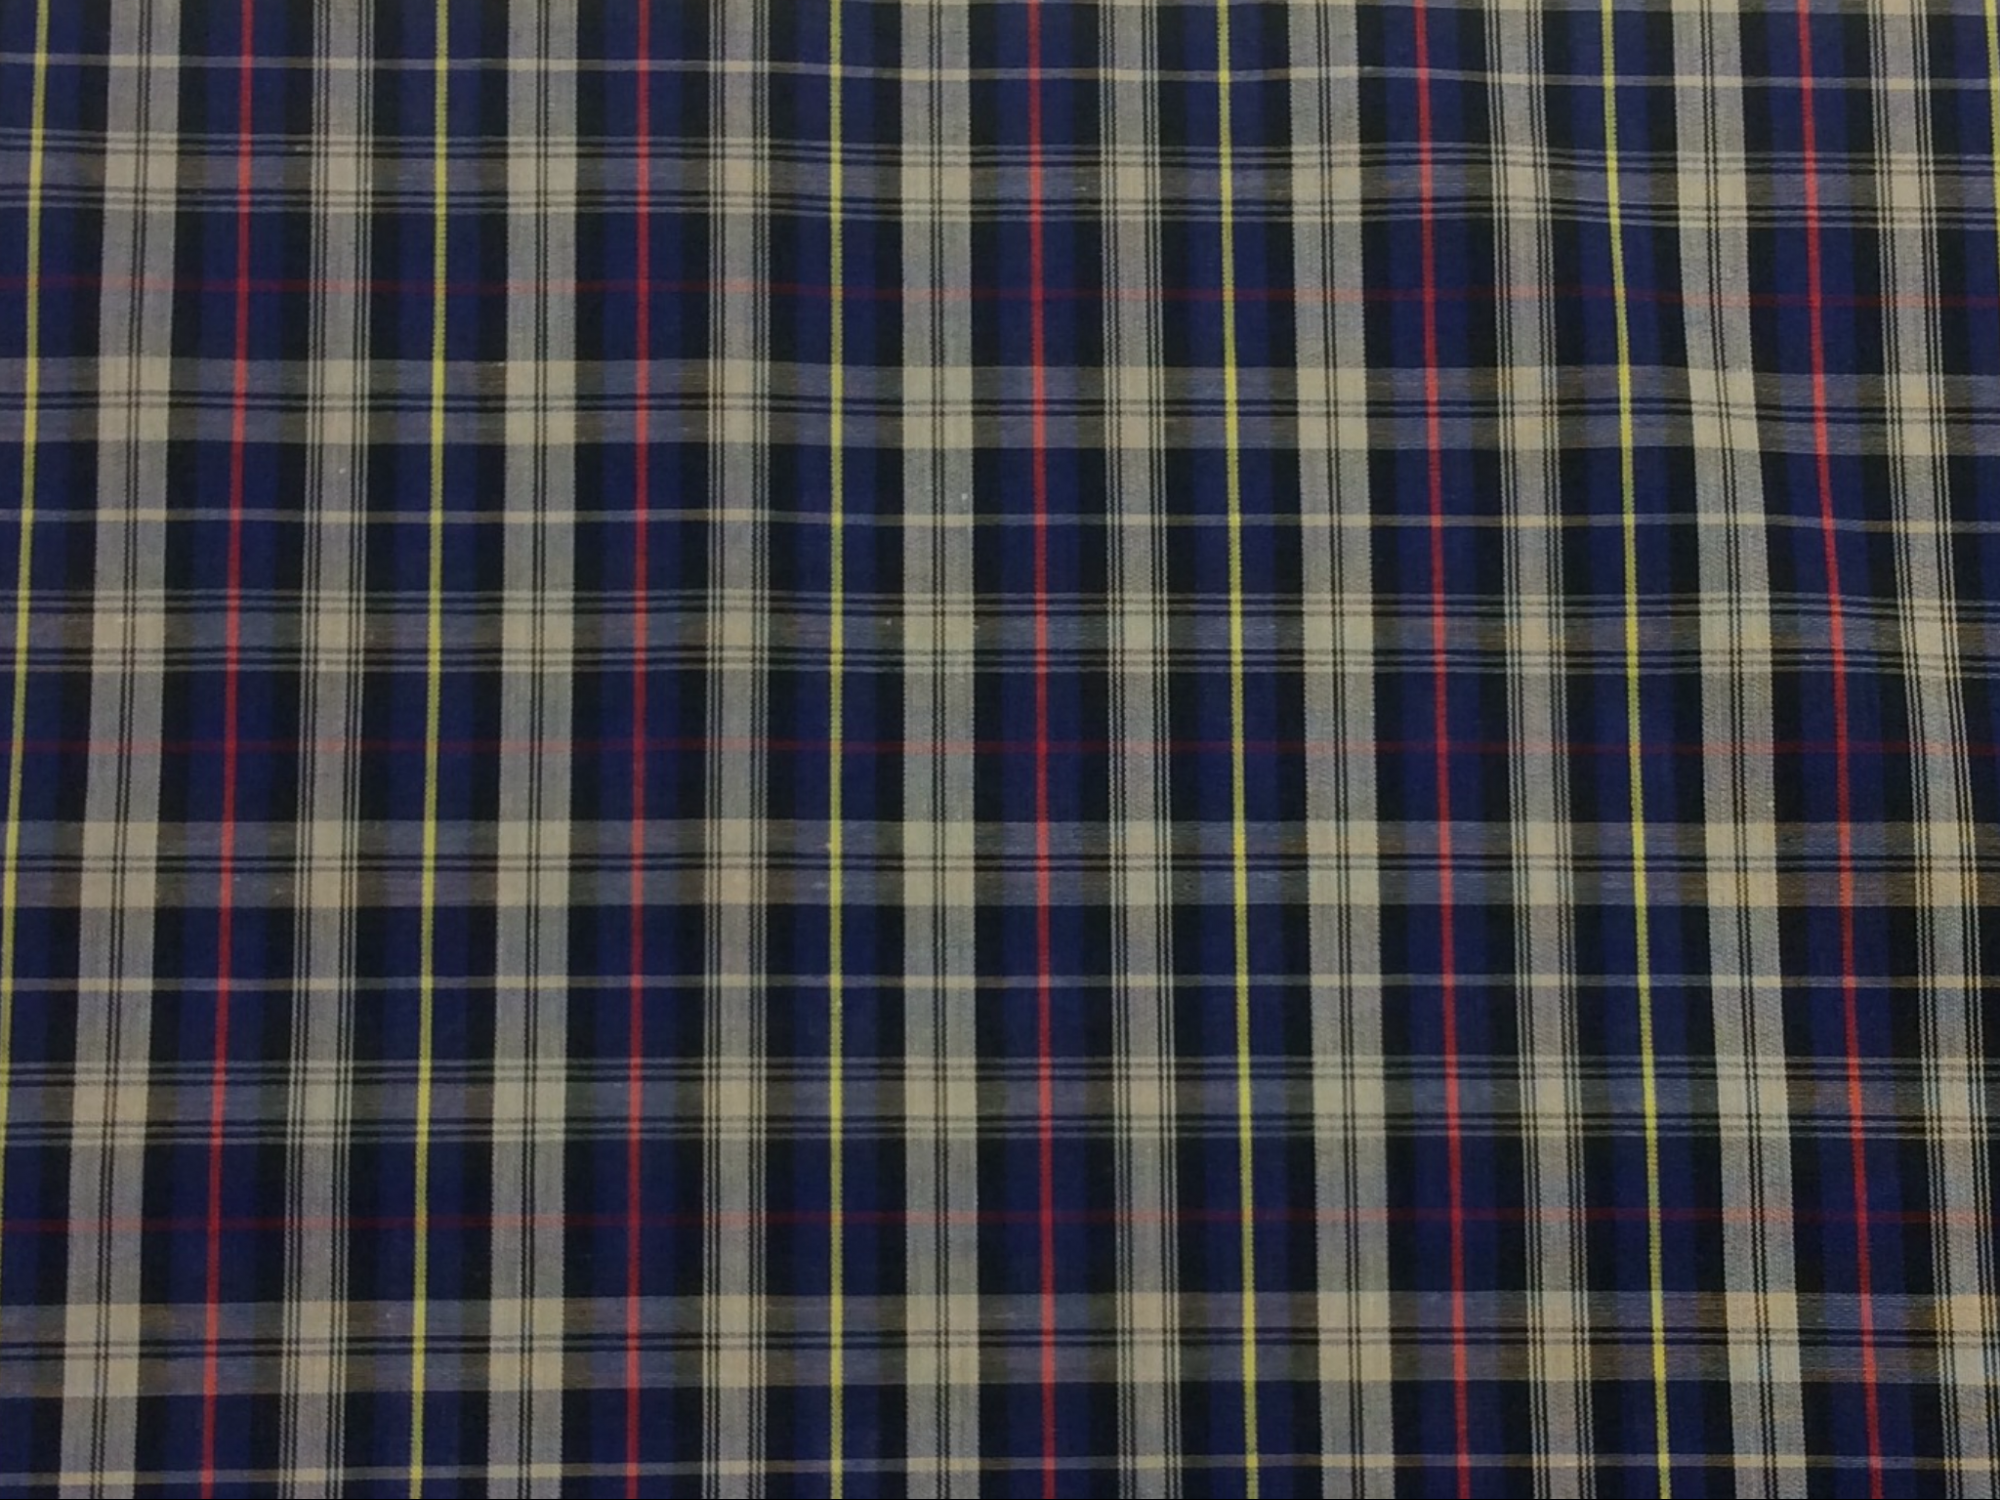 Tartan Plaid Murray Clan Apparel Fabric Yarn Dyed Fabric FTP12